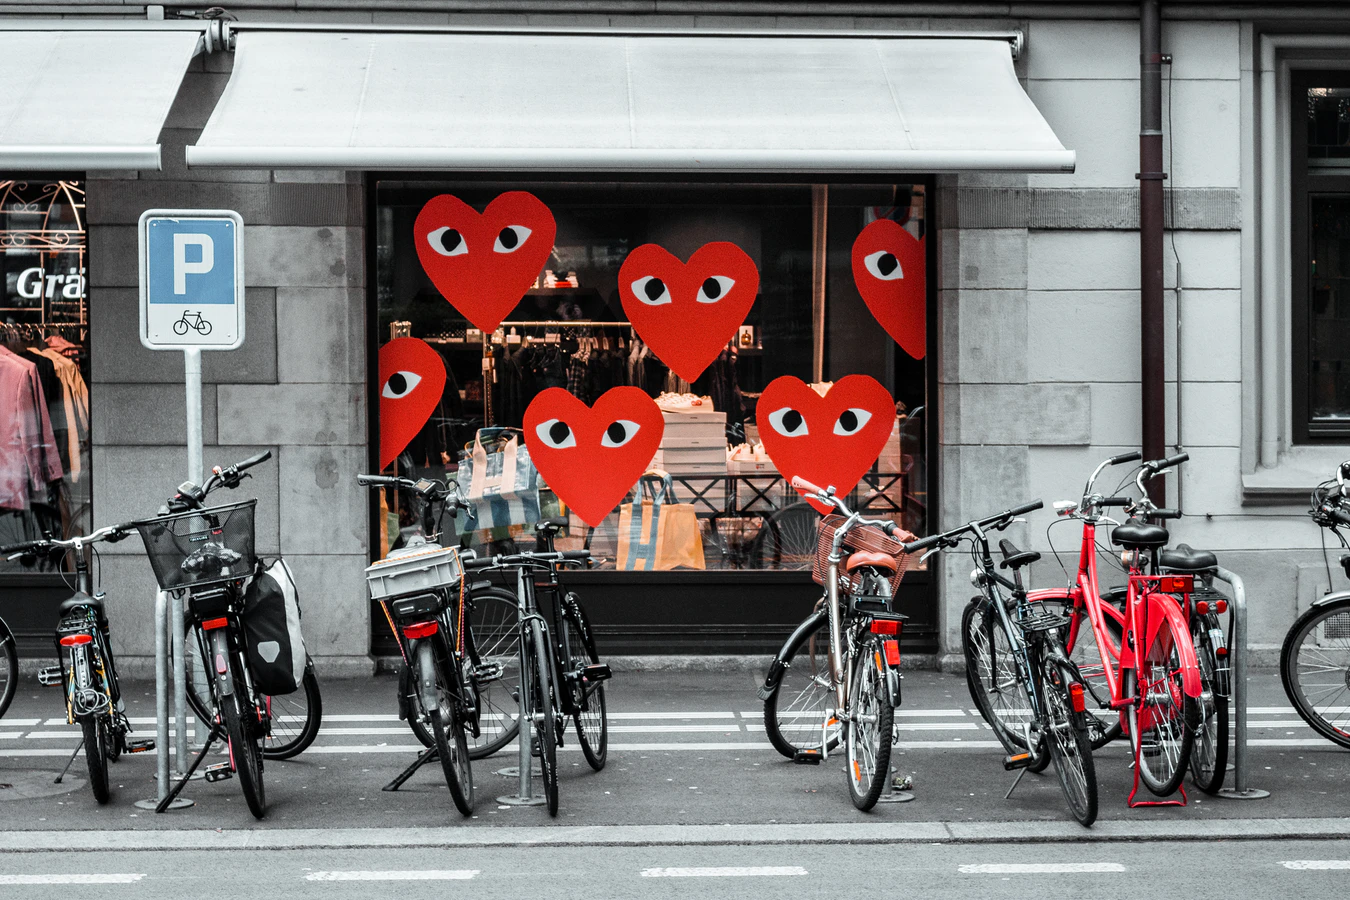 A Global love: The Influences of Comme des Garçons and Our